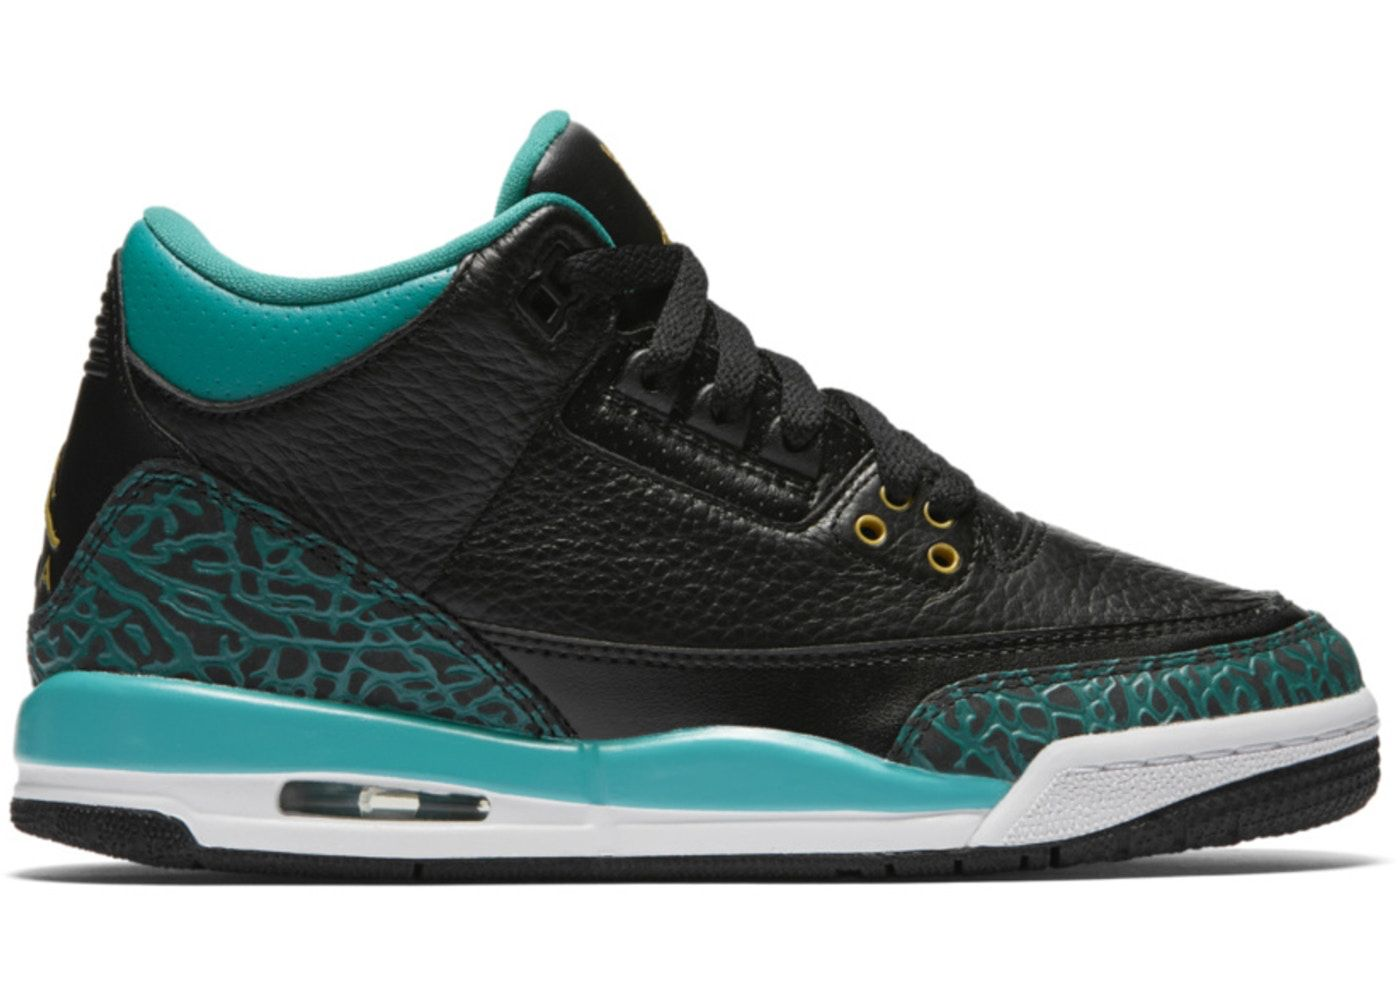 finest selection fead4 4c7cd Check out the Jordan 3 Retro Rio Teal (GS) available on ...